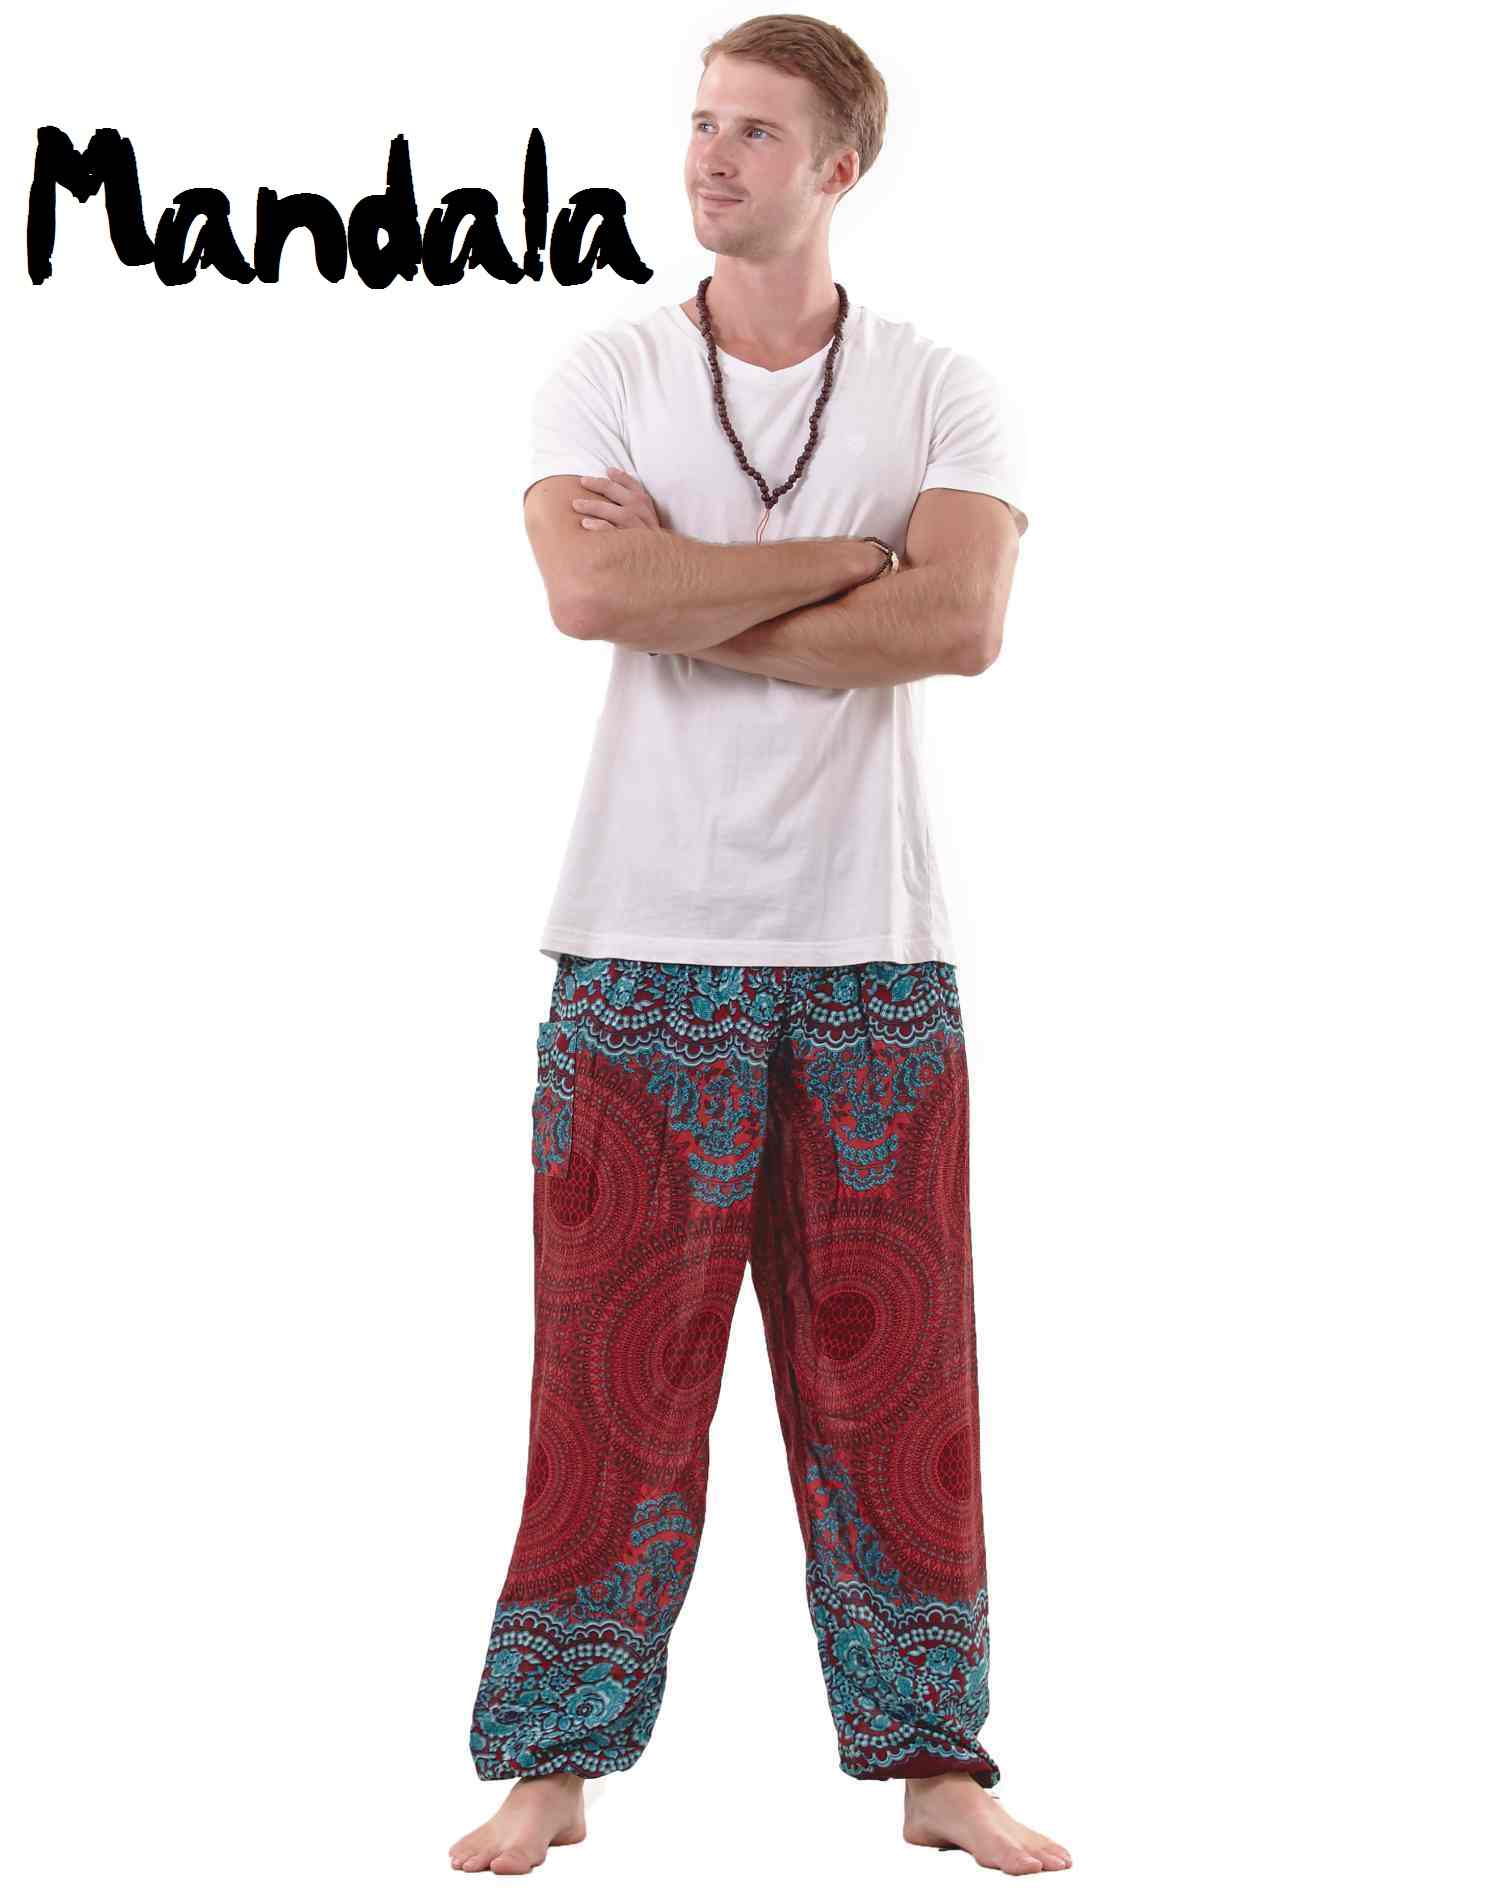 Mandala Harem Hippie Pants for Men in Red & Turquoise